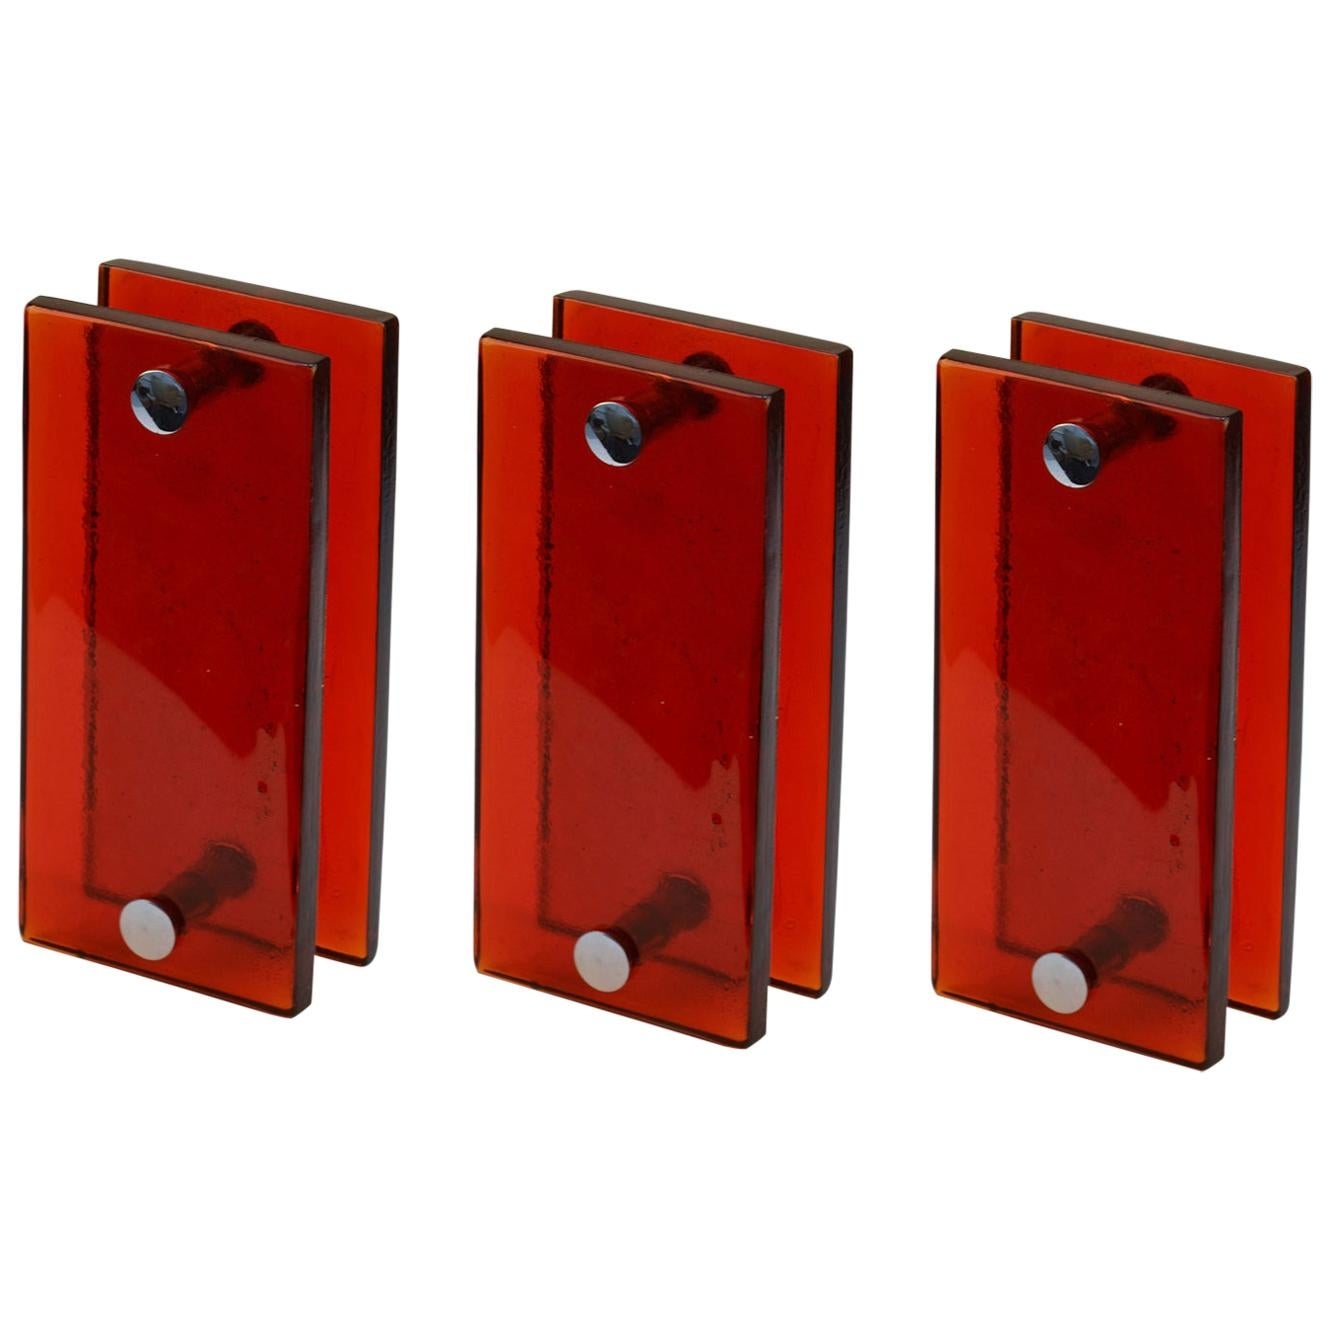 Three Pairs of Large Push and Pull Double Door Handles in Red Glass